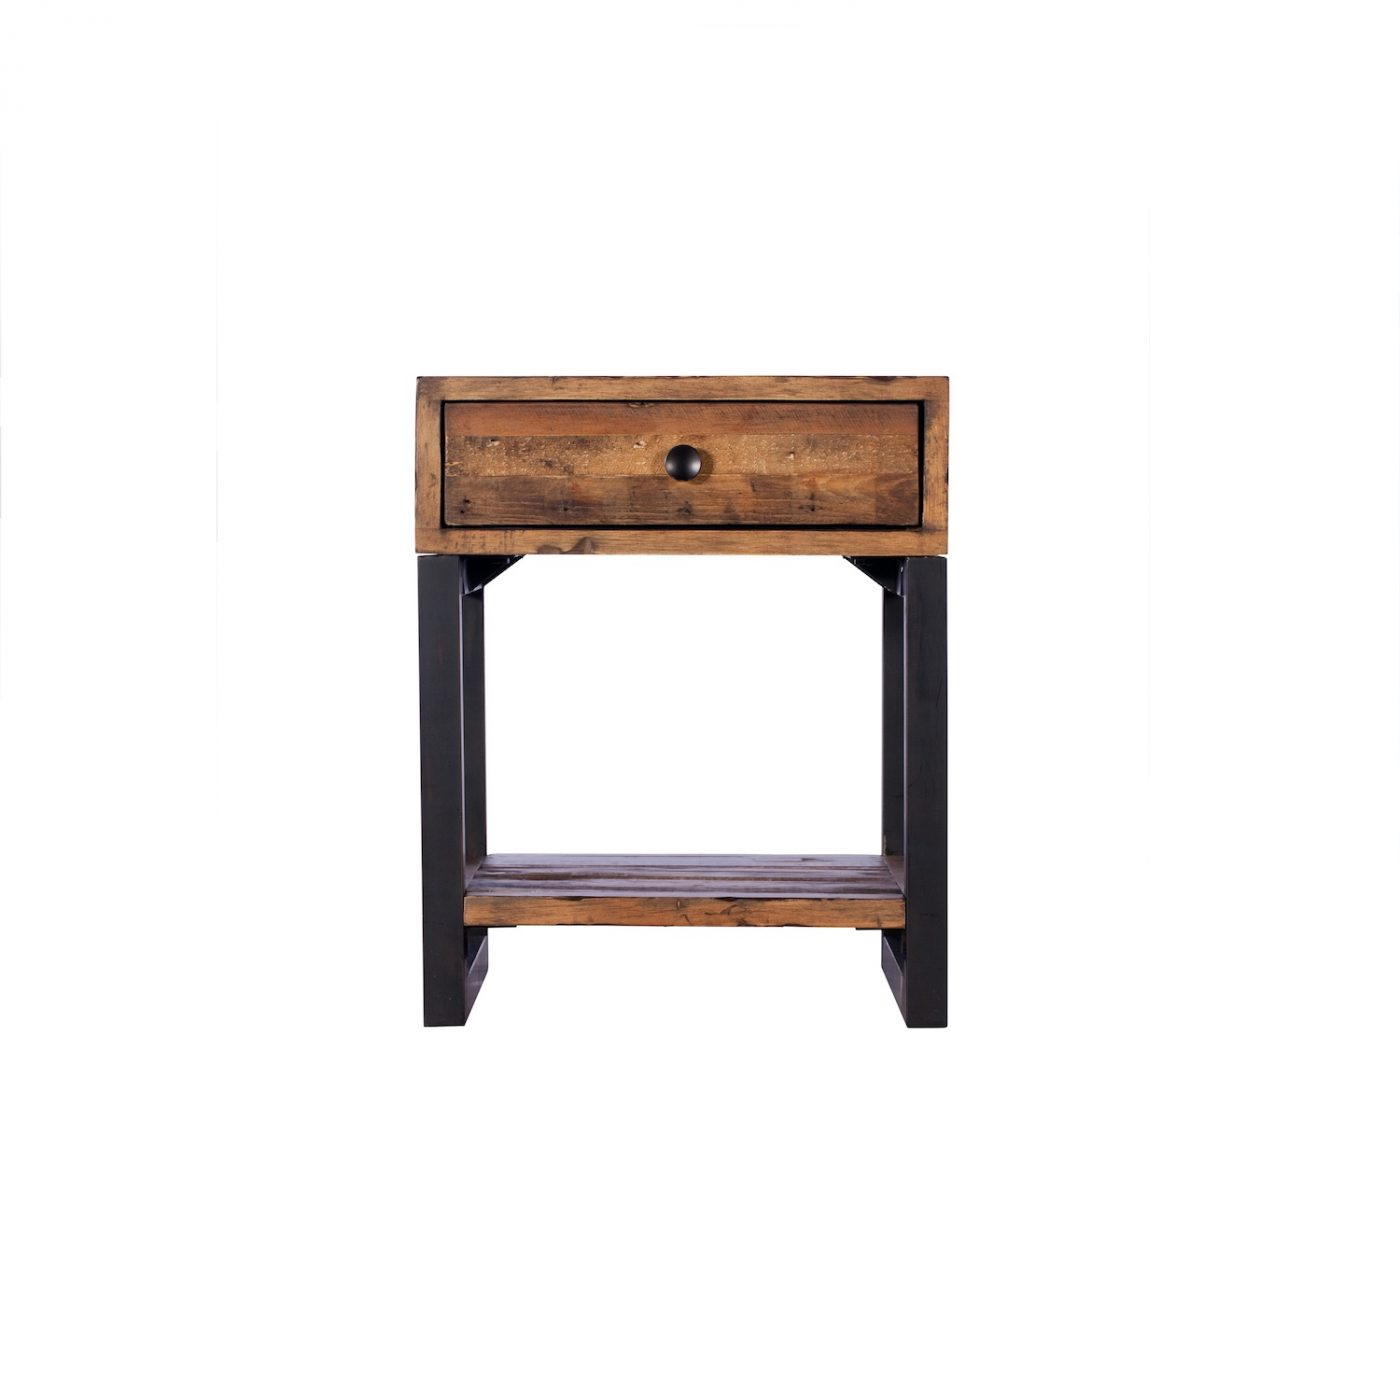 newland rustic wooden reclaimed wood lamp table